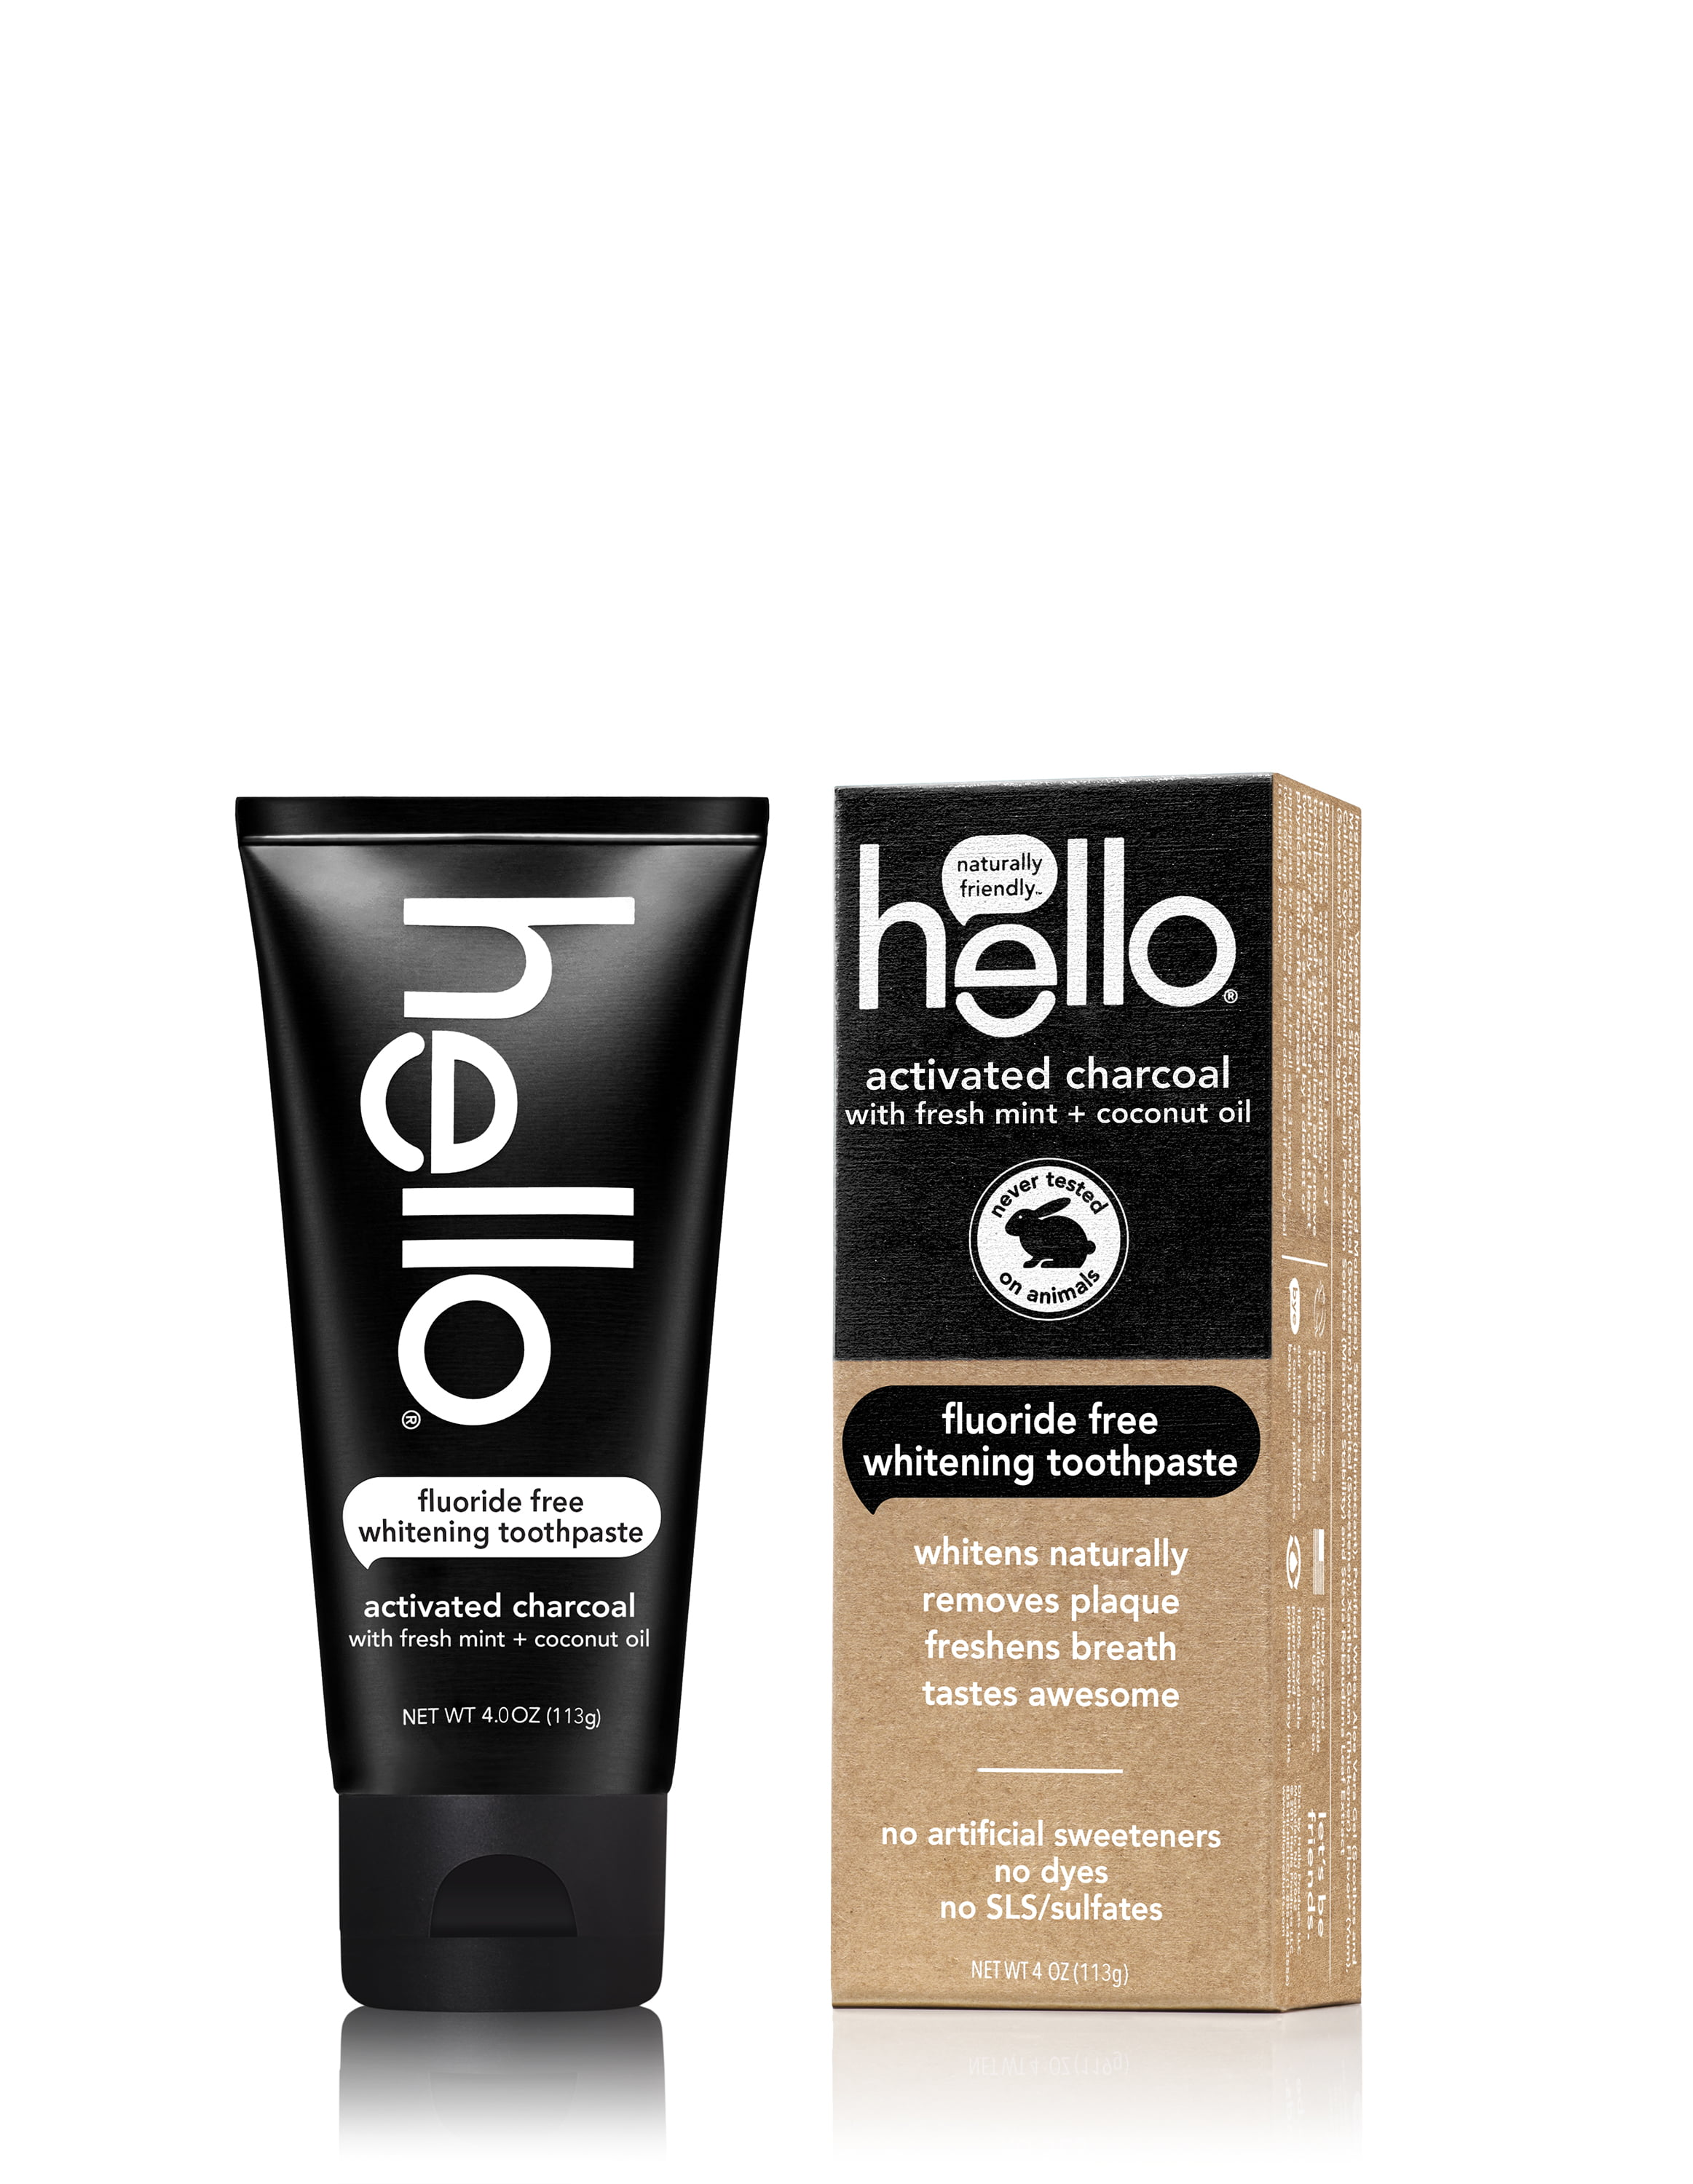 hello activated charcoal fluoride free whitening toothpaste